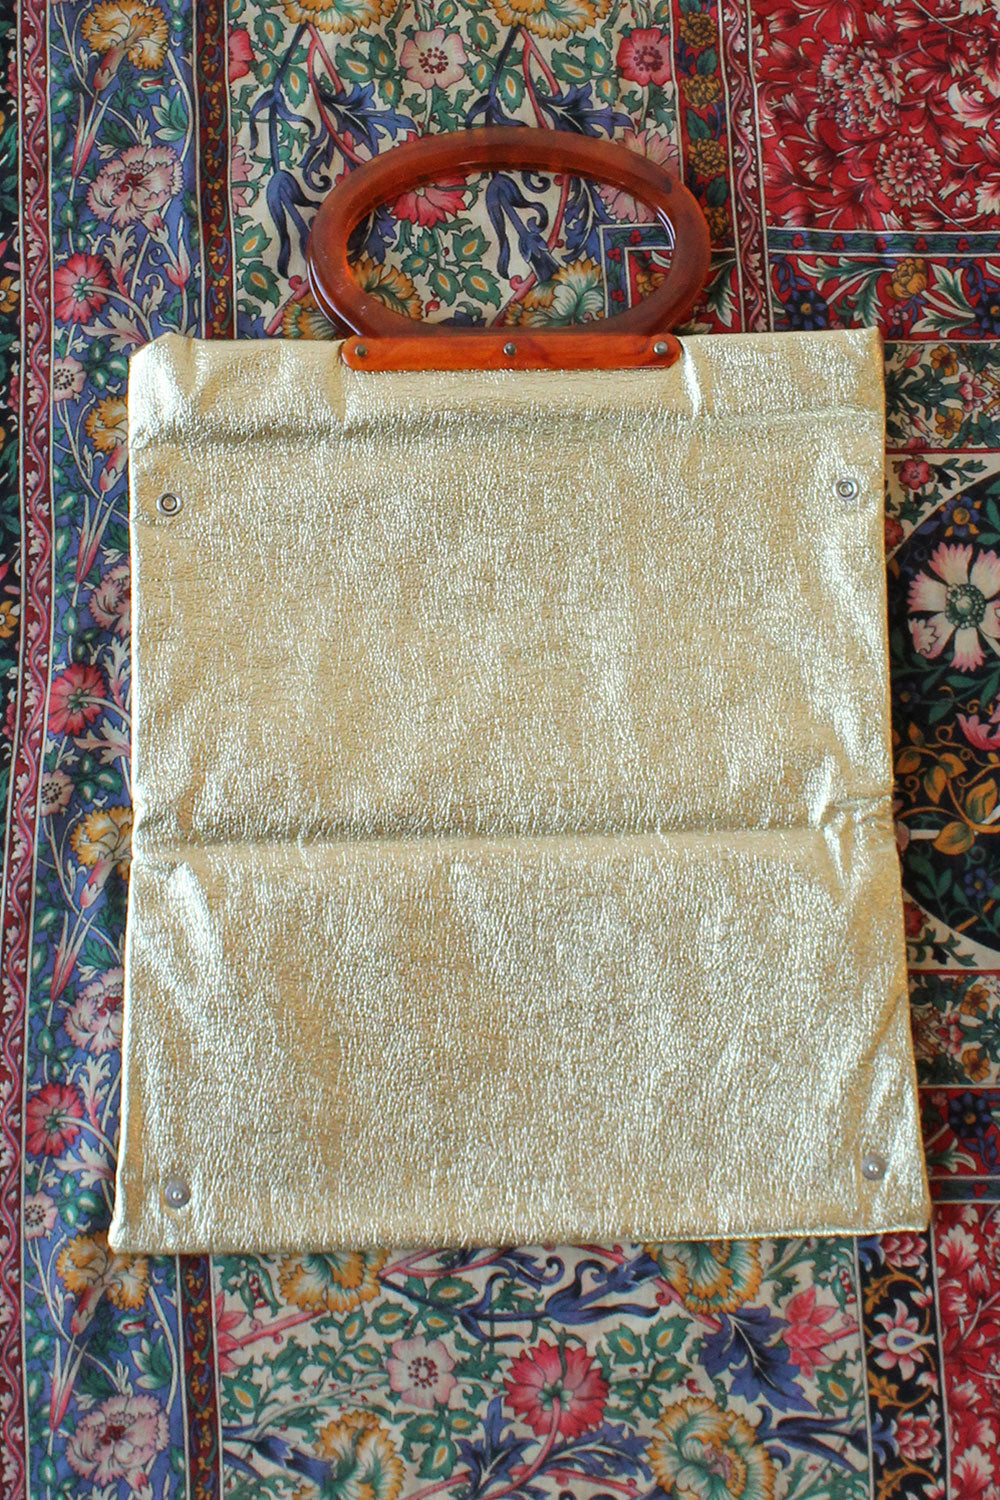 Gold Foil Envelope Purse